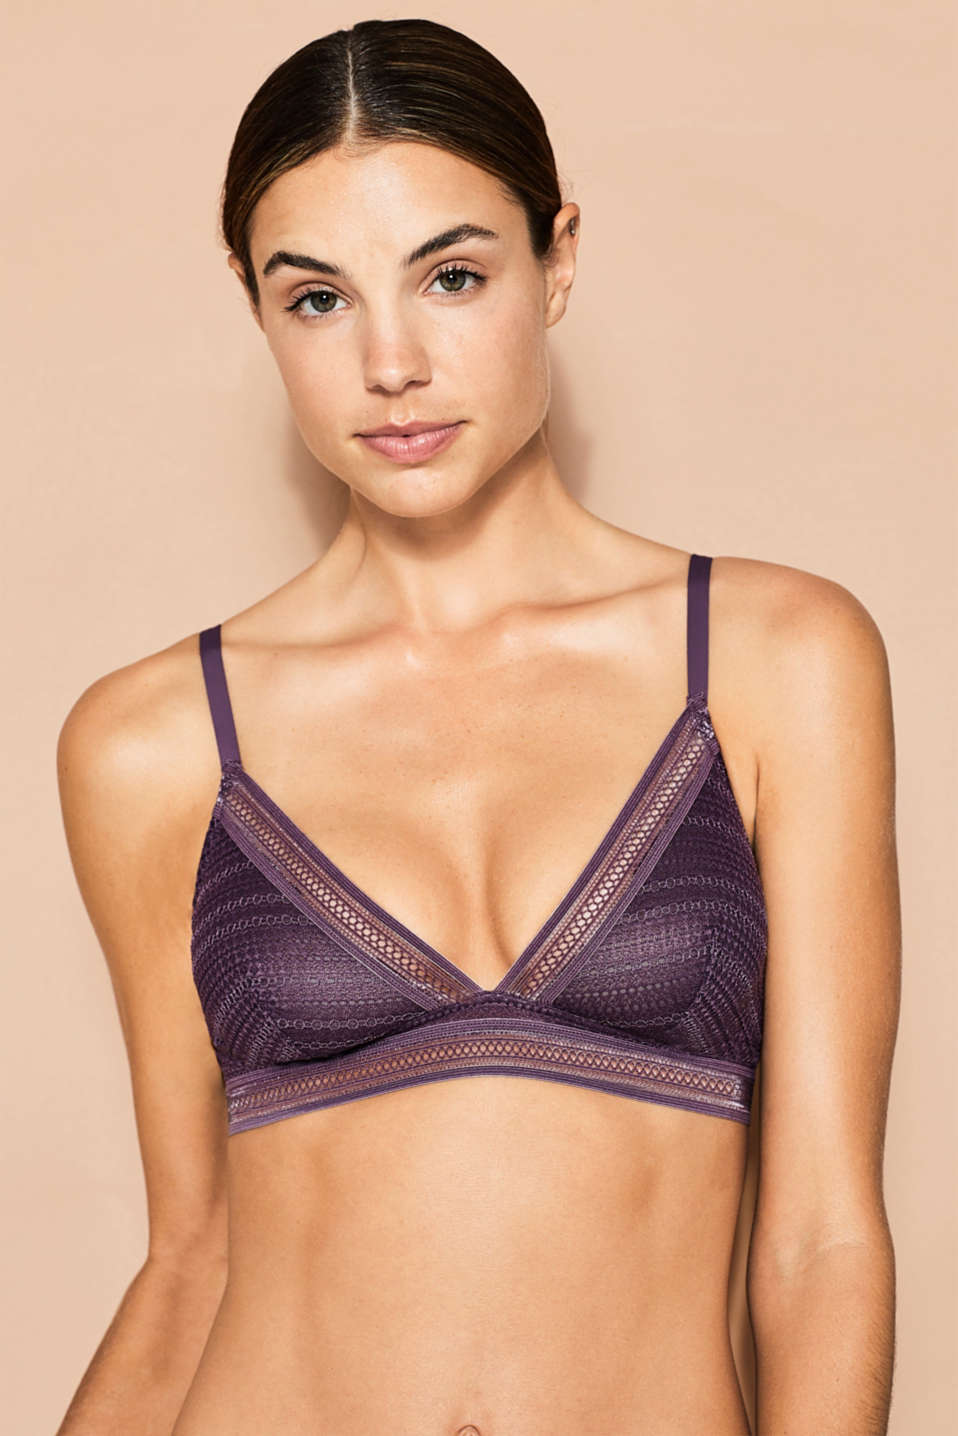 Esprit - NYE wireless bra in graphic lace